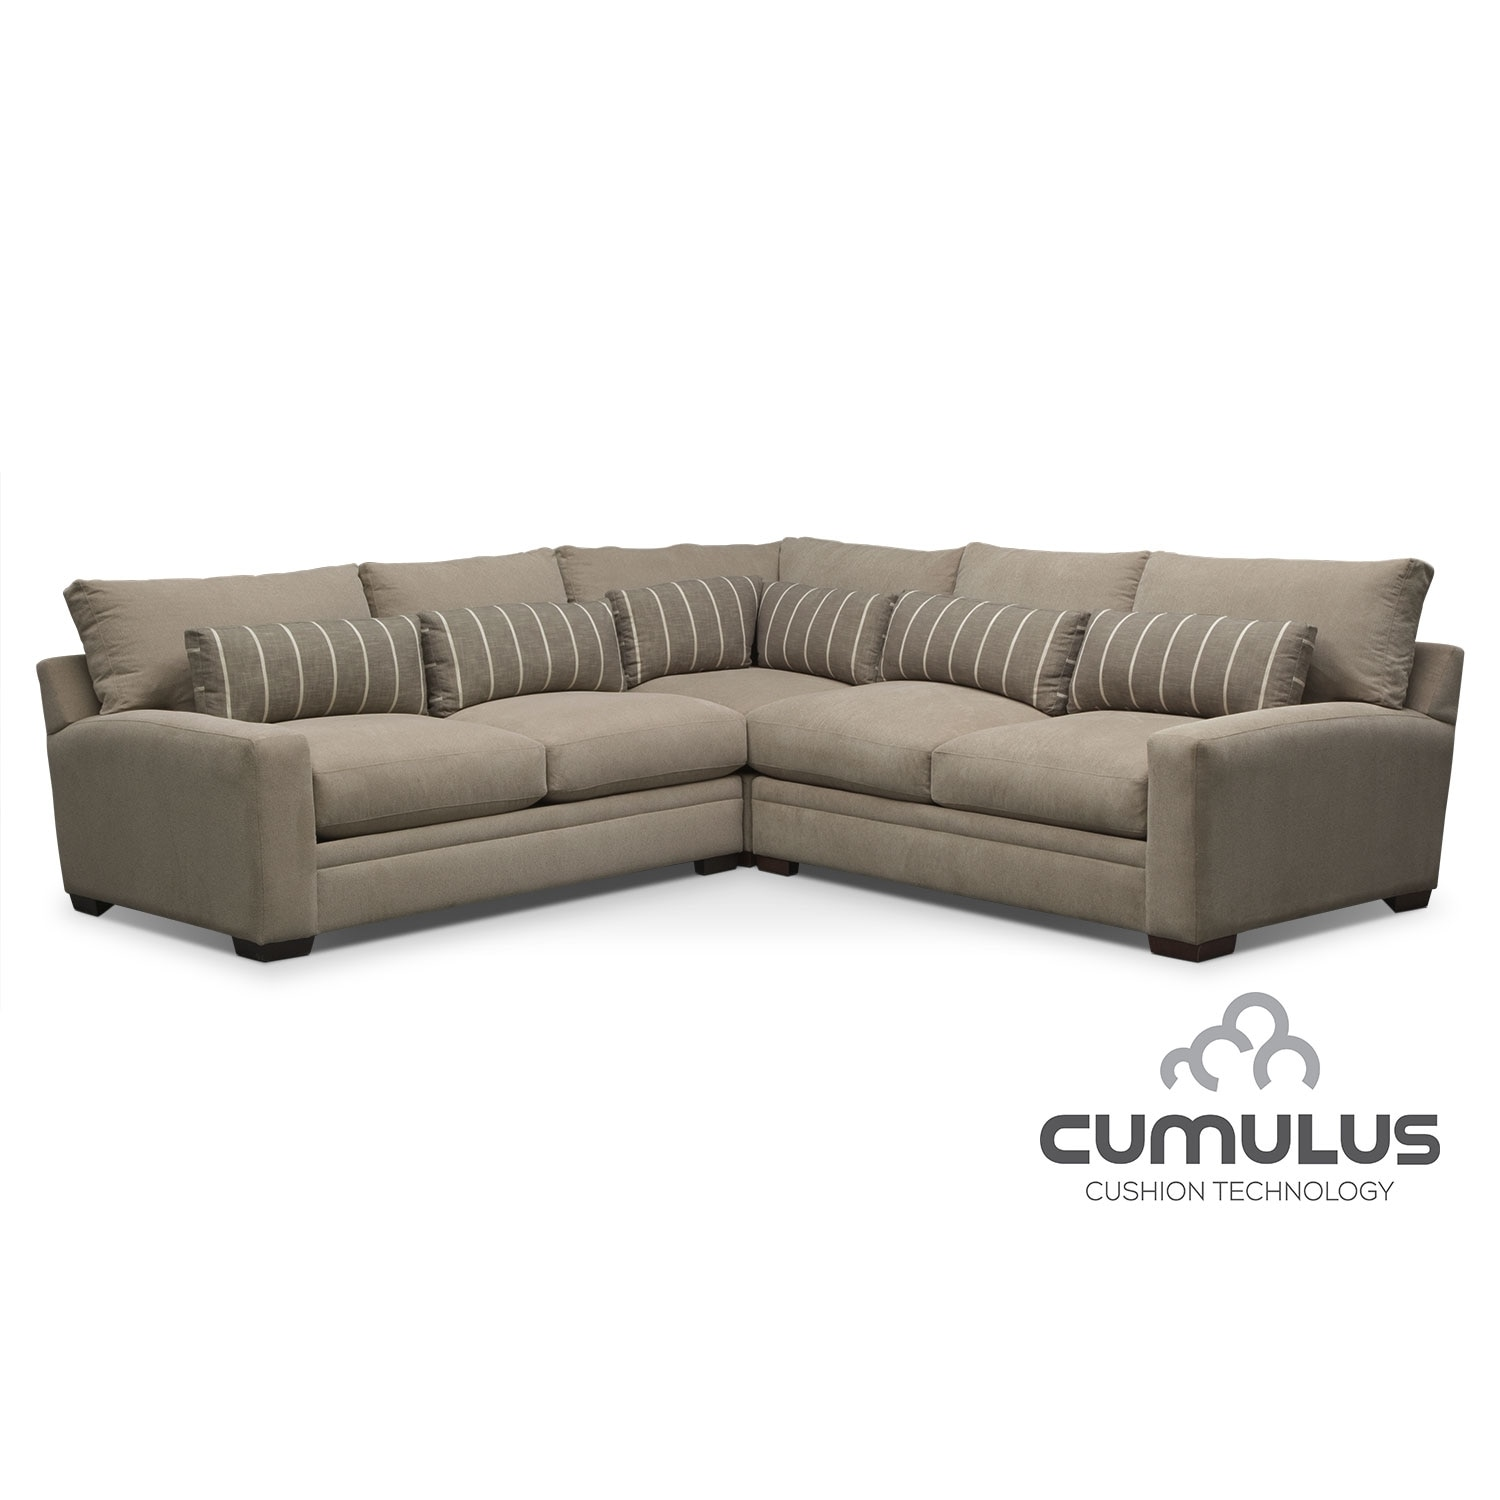 Living Room Furniture - Ventura 3-Piece Sectional - Buff